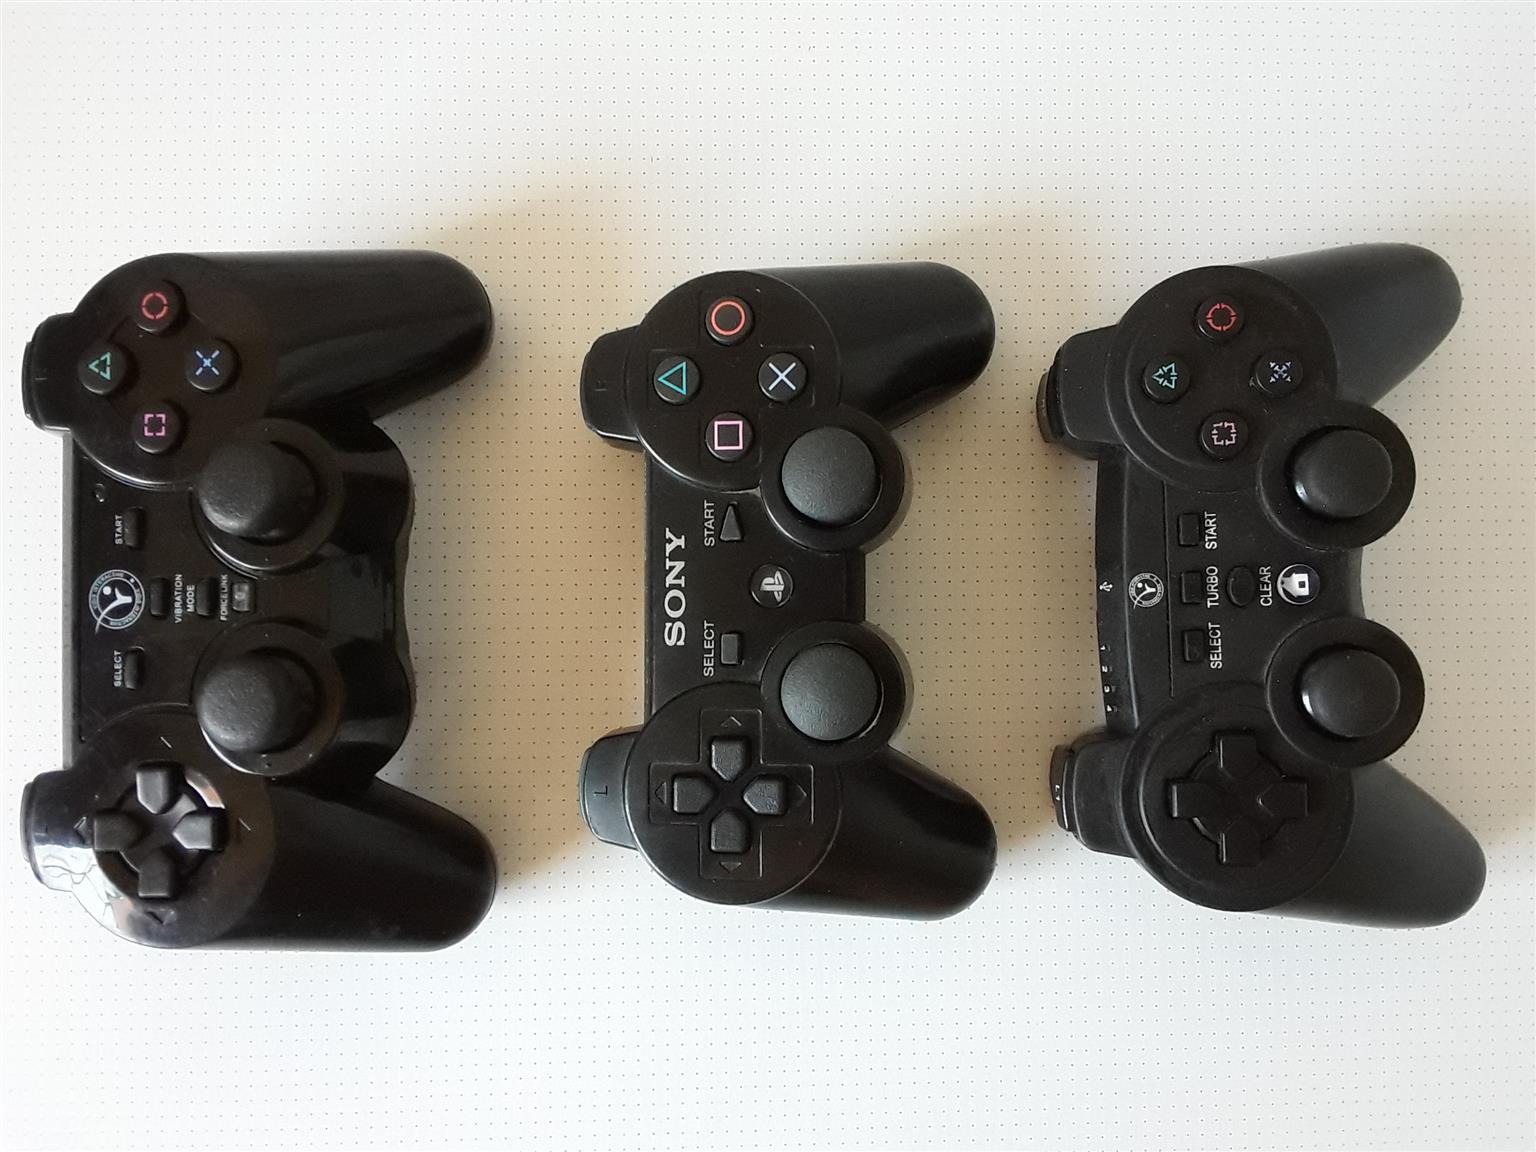 PS3 Controllers. Three to choose from. I am in Orange Grove